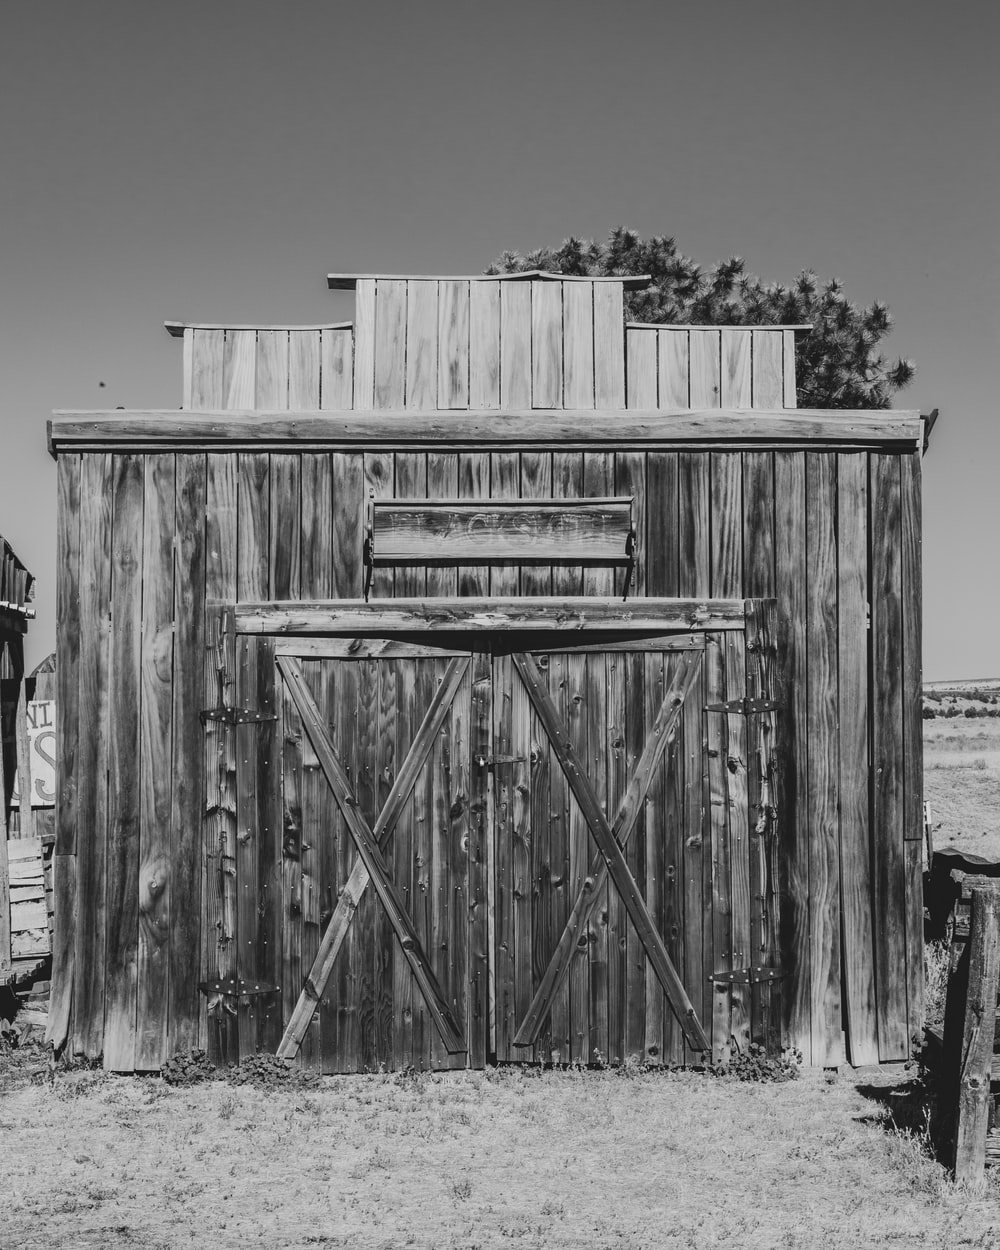 grayscale photo of wooden fence